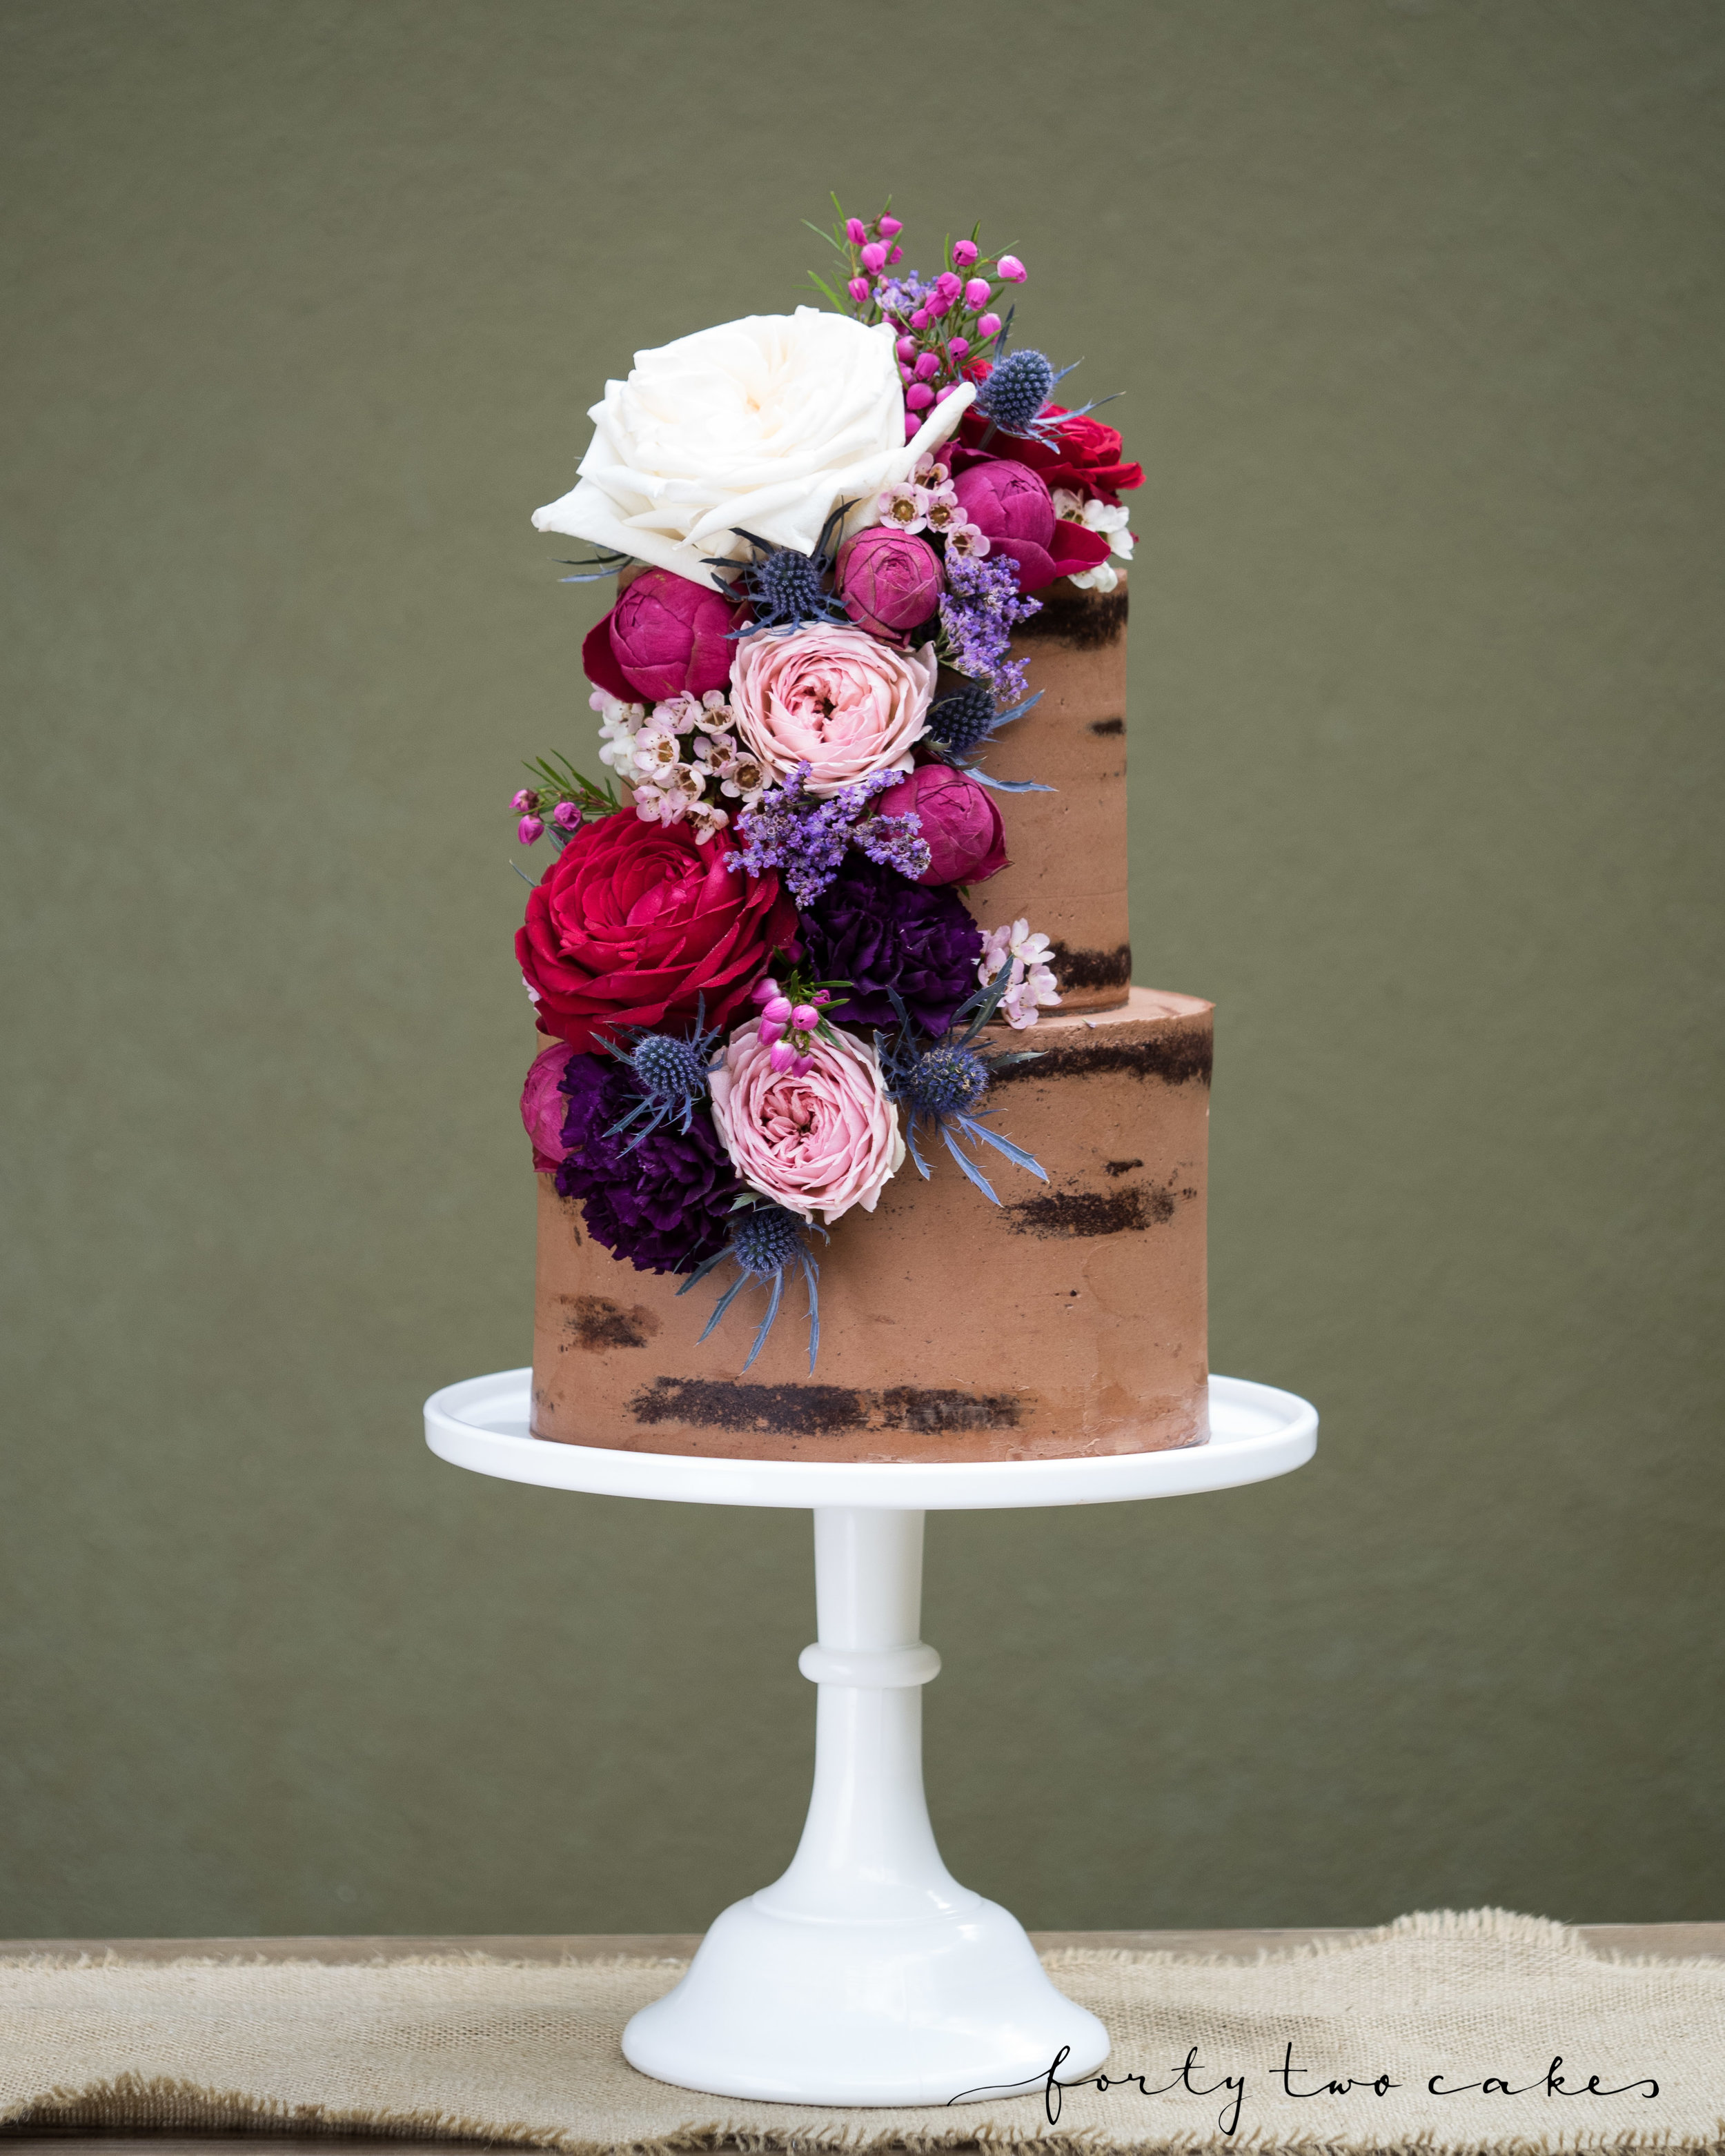 Forty-Two Cakes - Seminaked-15.jpg